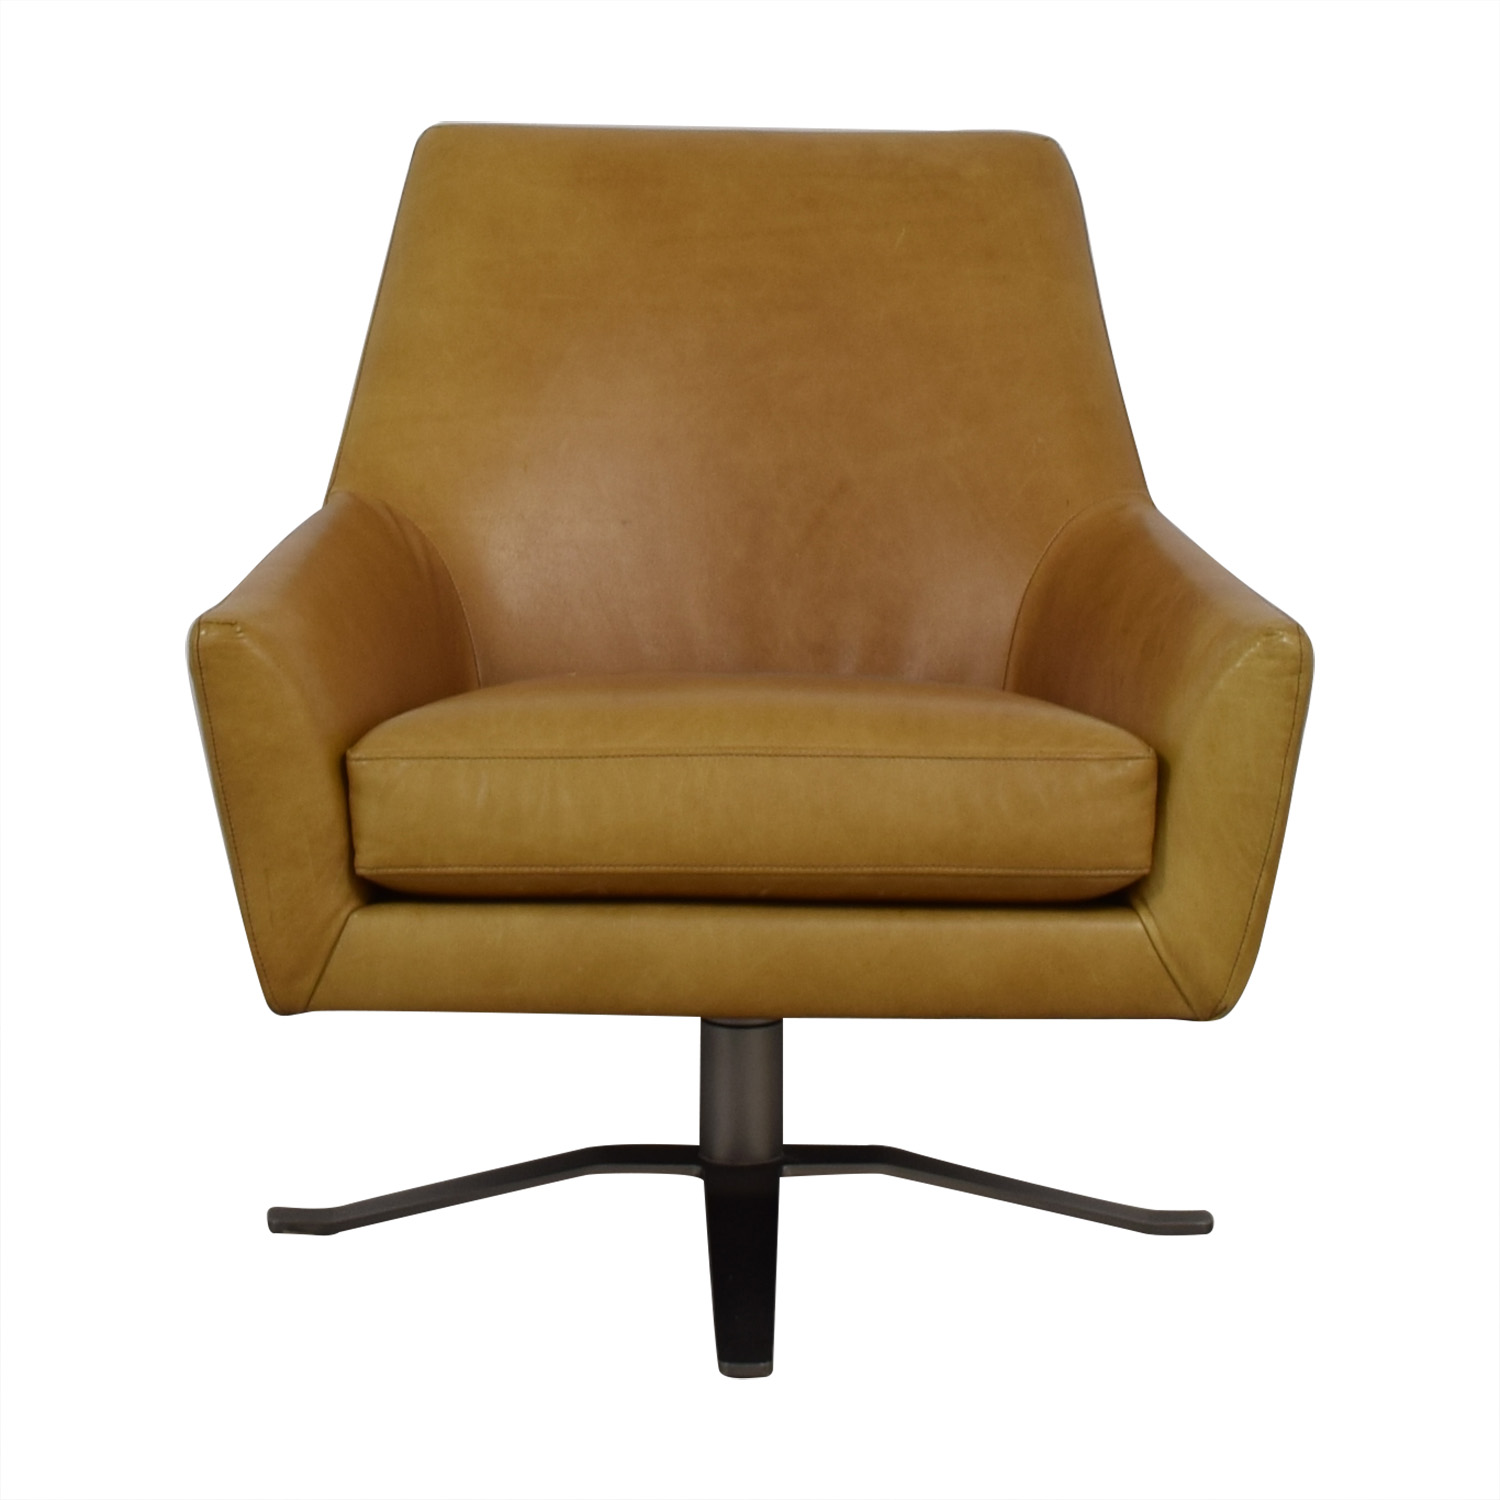 70 Off West Elm West Elm Lucas Swivel Base Chair Chairs